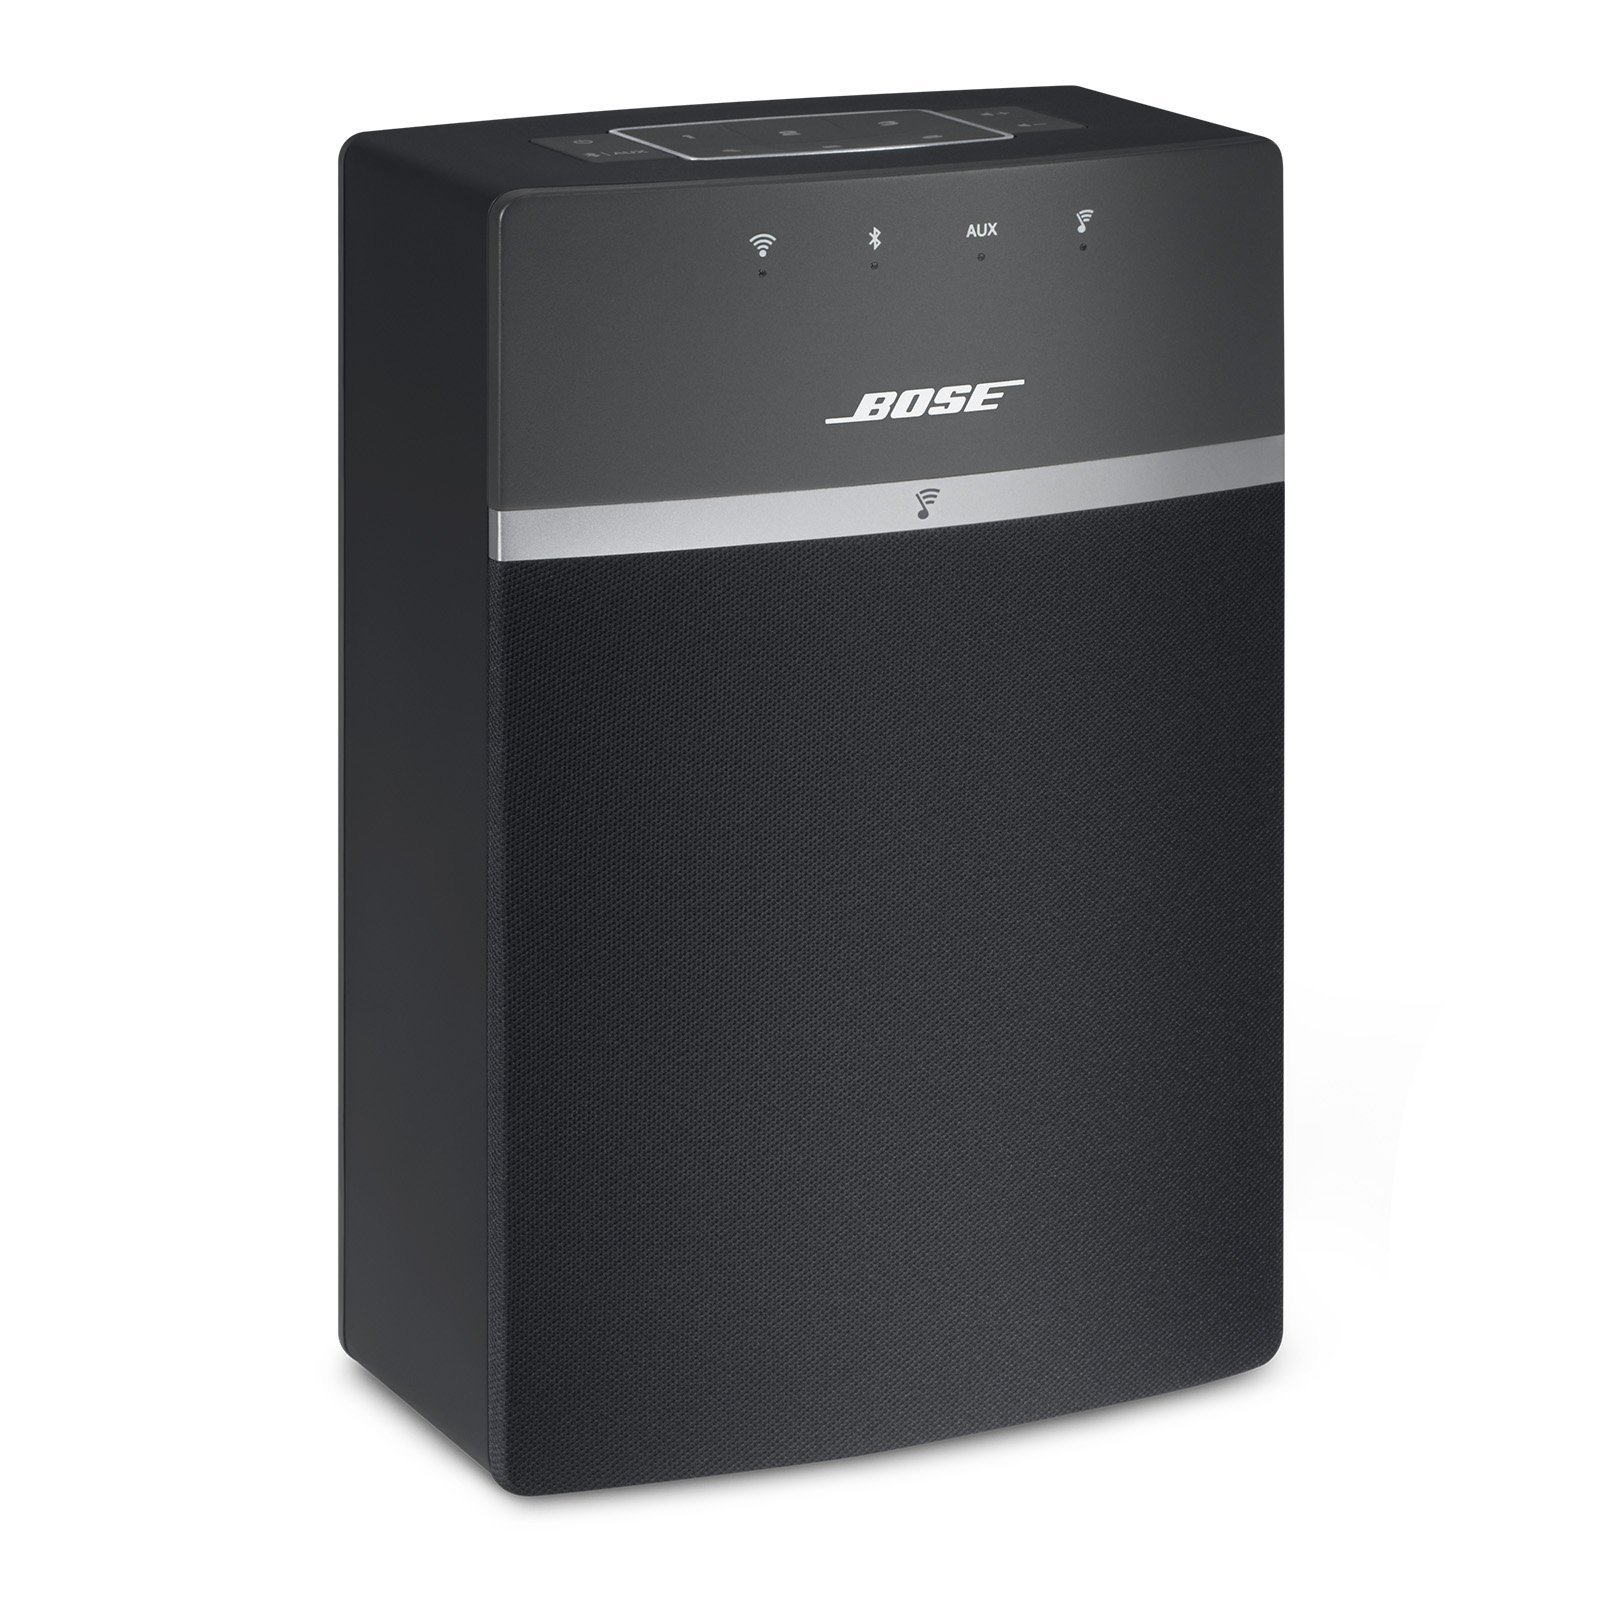 보스 사운드터치 10 블루투스 스피커 Bose SoundTouch 10 wireless speaker, works with Alexa